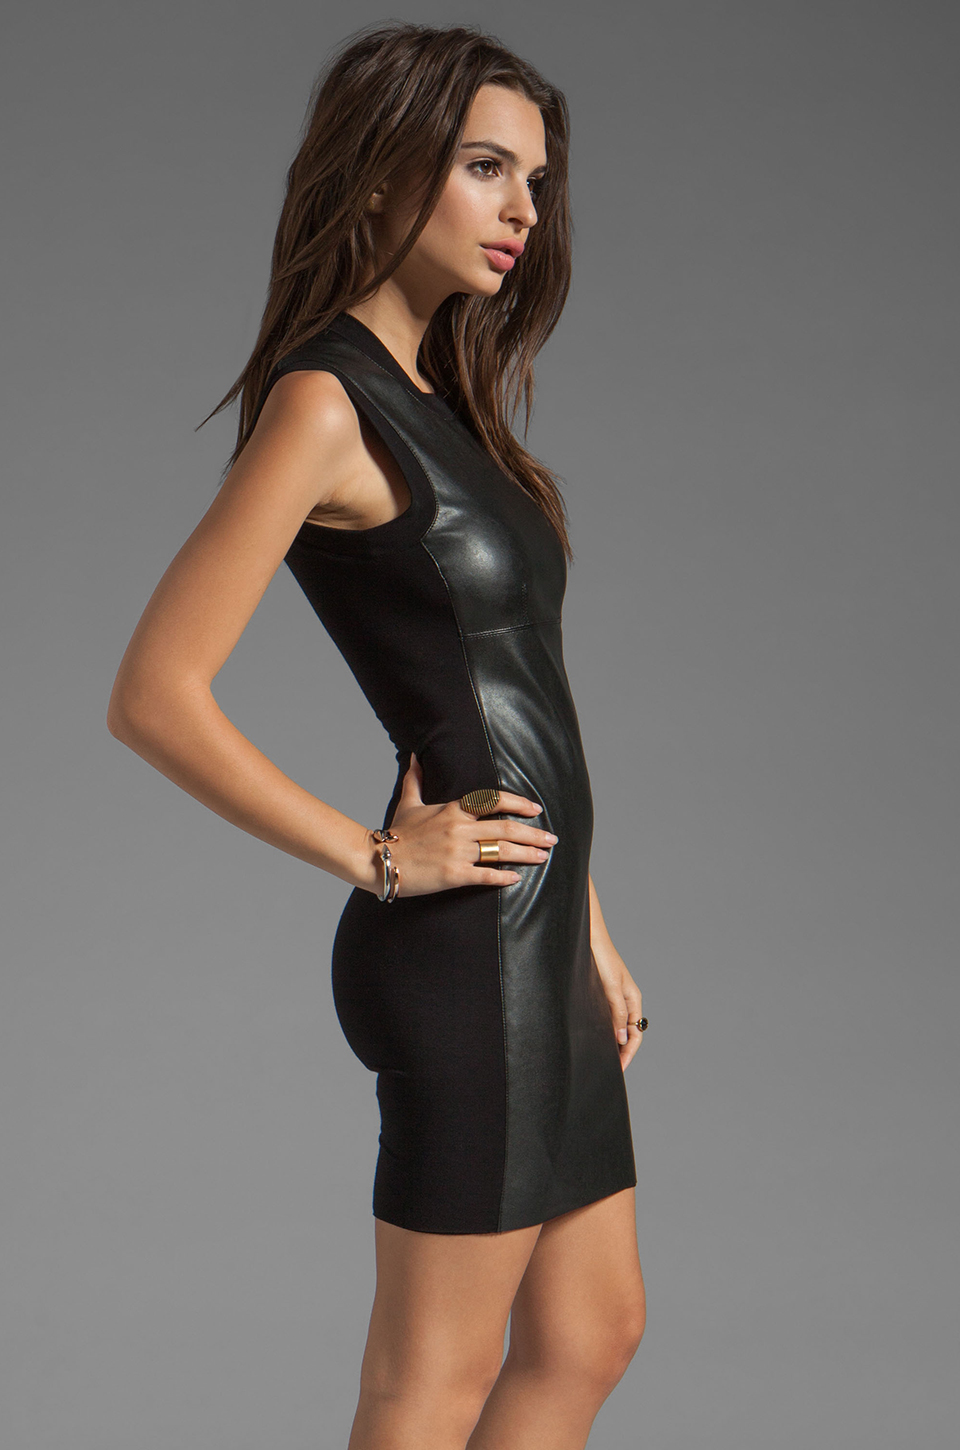 Bailey 44 Speed Demon Dress in Black